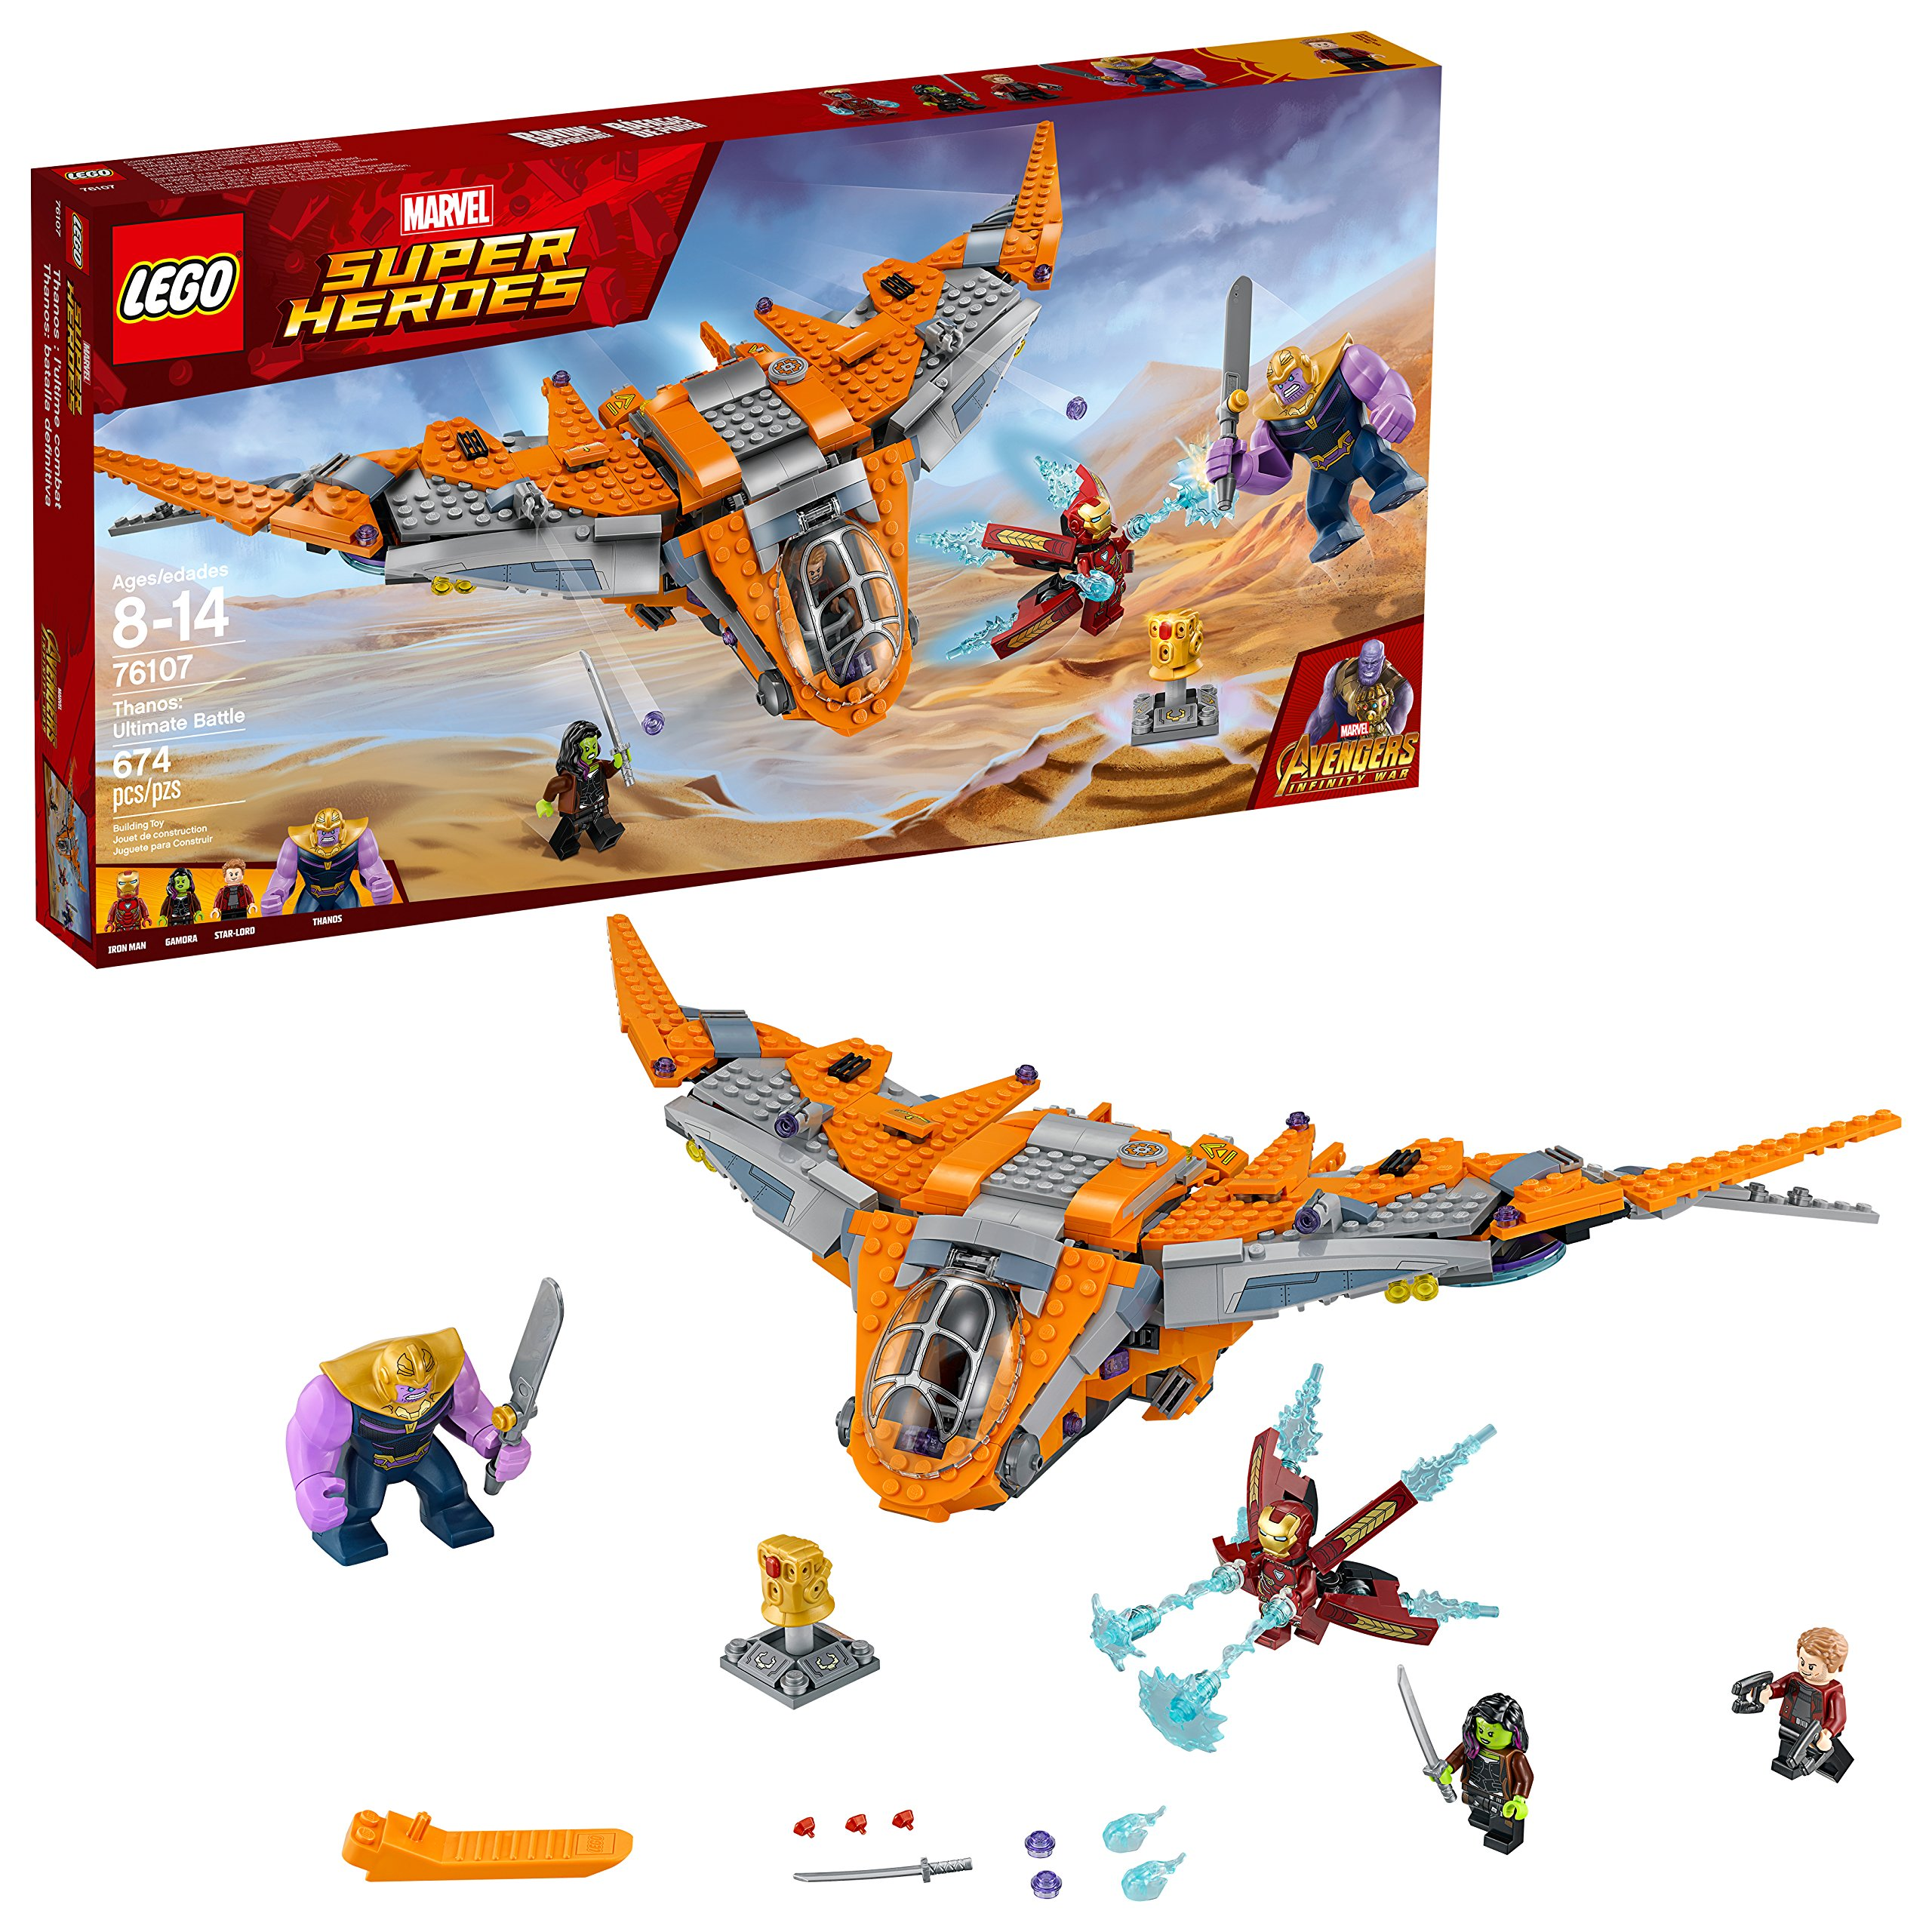 LEGO Marvel Super Heroes Avengers: Infinity War Thanos: Ultimate Battle 76107 Guardians of the Galaxy Starship Action Construction Toy and Building Kit for Kids (674 Piece) by LEGO